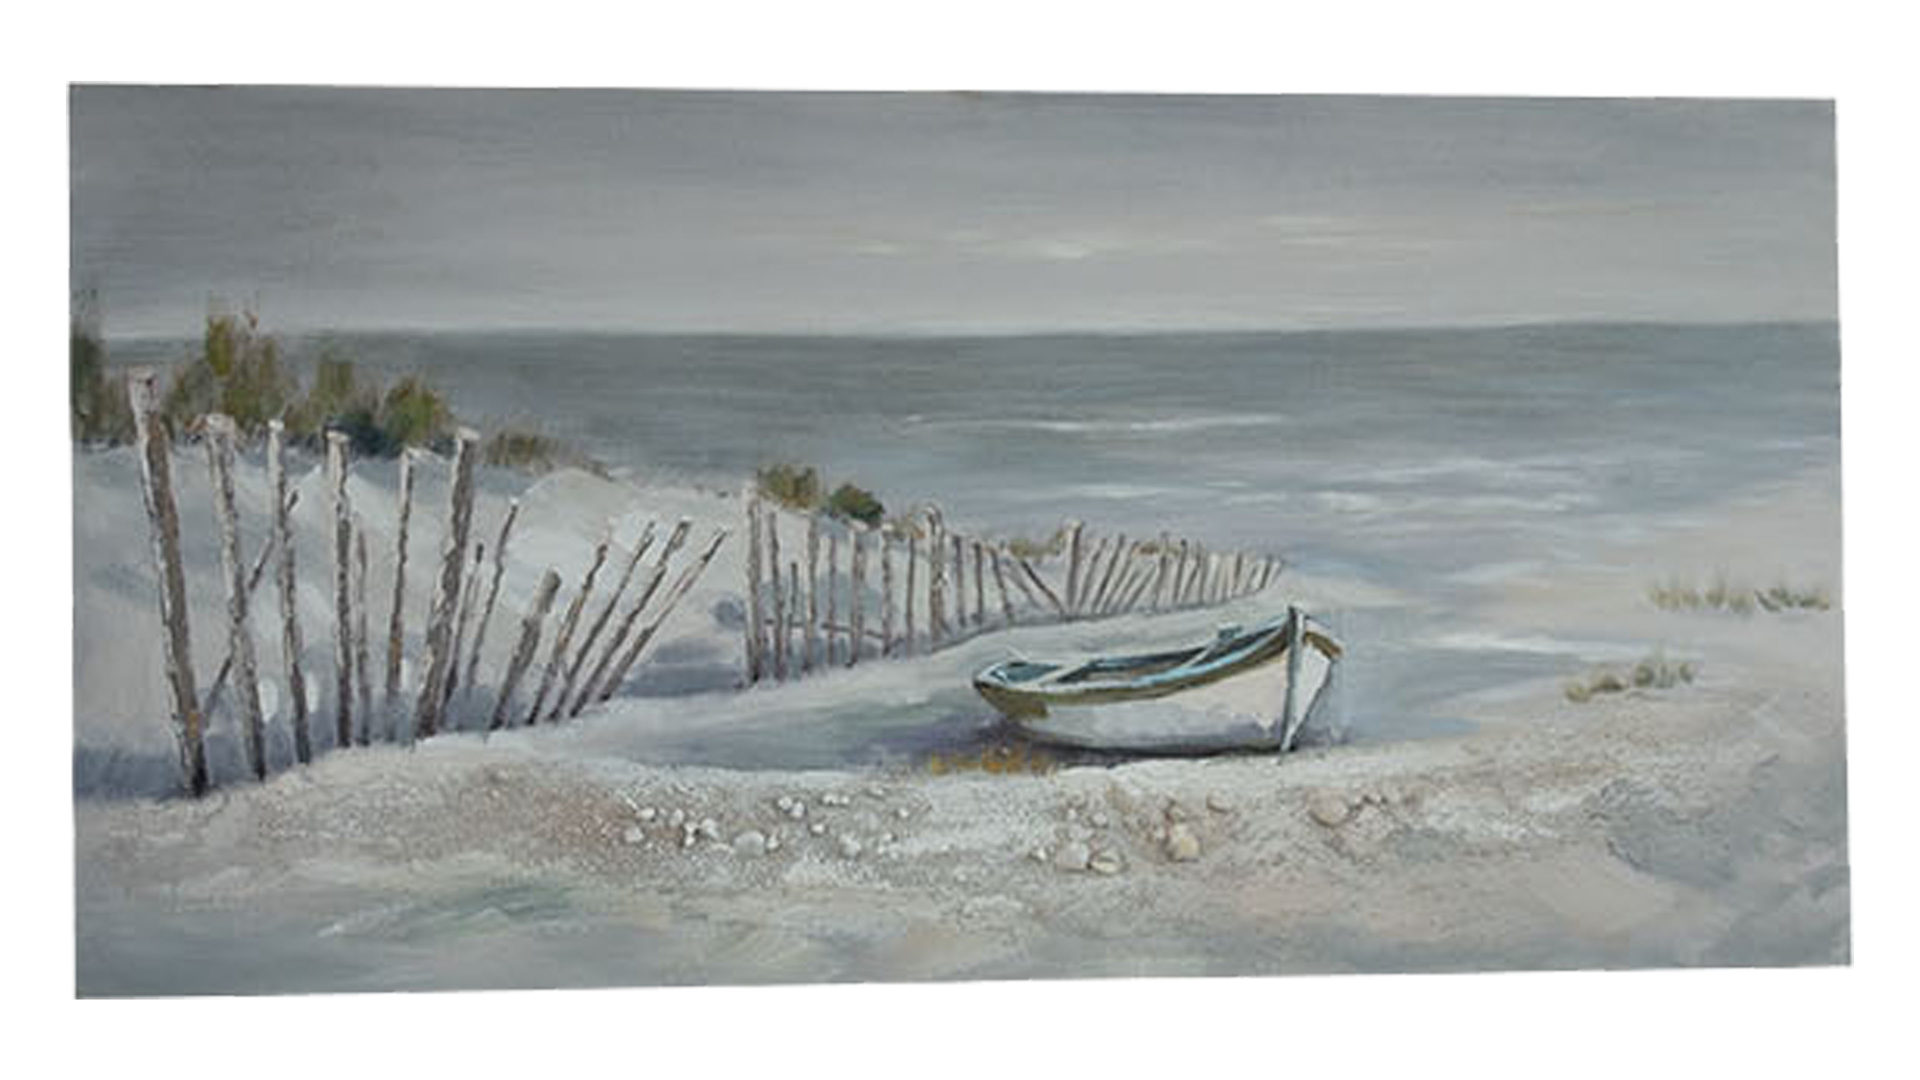 Acrylbild Vme-import aus Stoff in Blau SO!WONDERFUL Leinwandbild Beach View Acrylfarben, Strandmotiv – ca. 70 x 140 cm